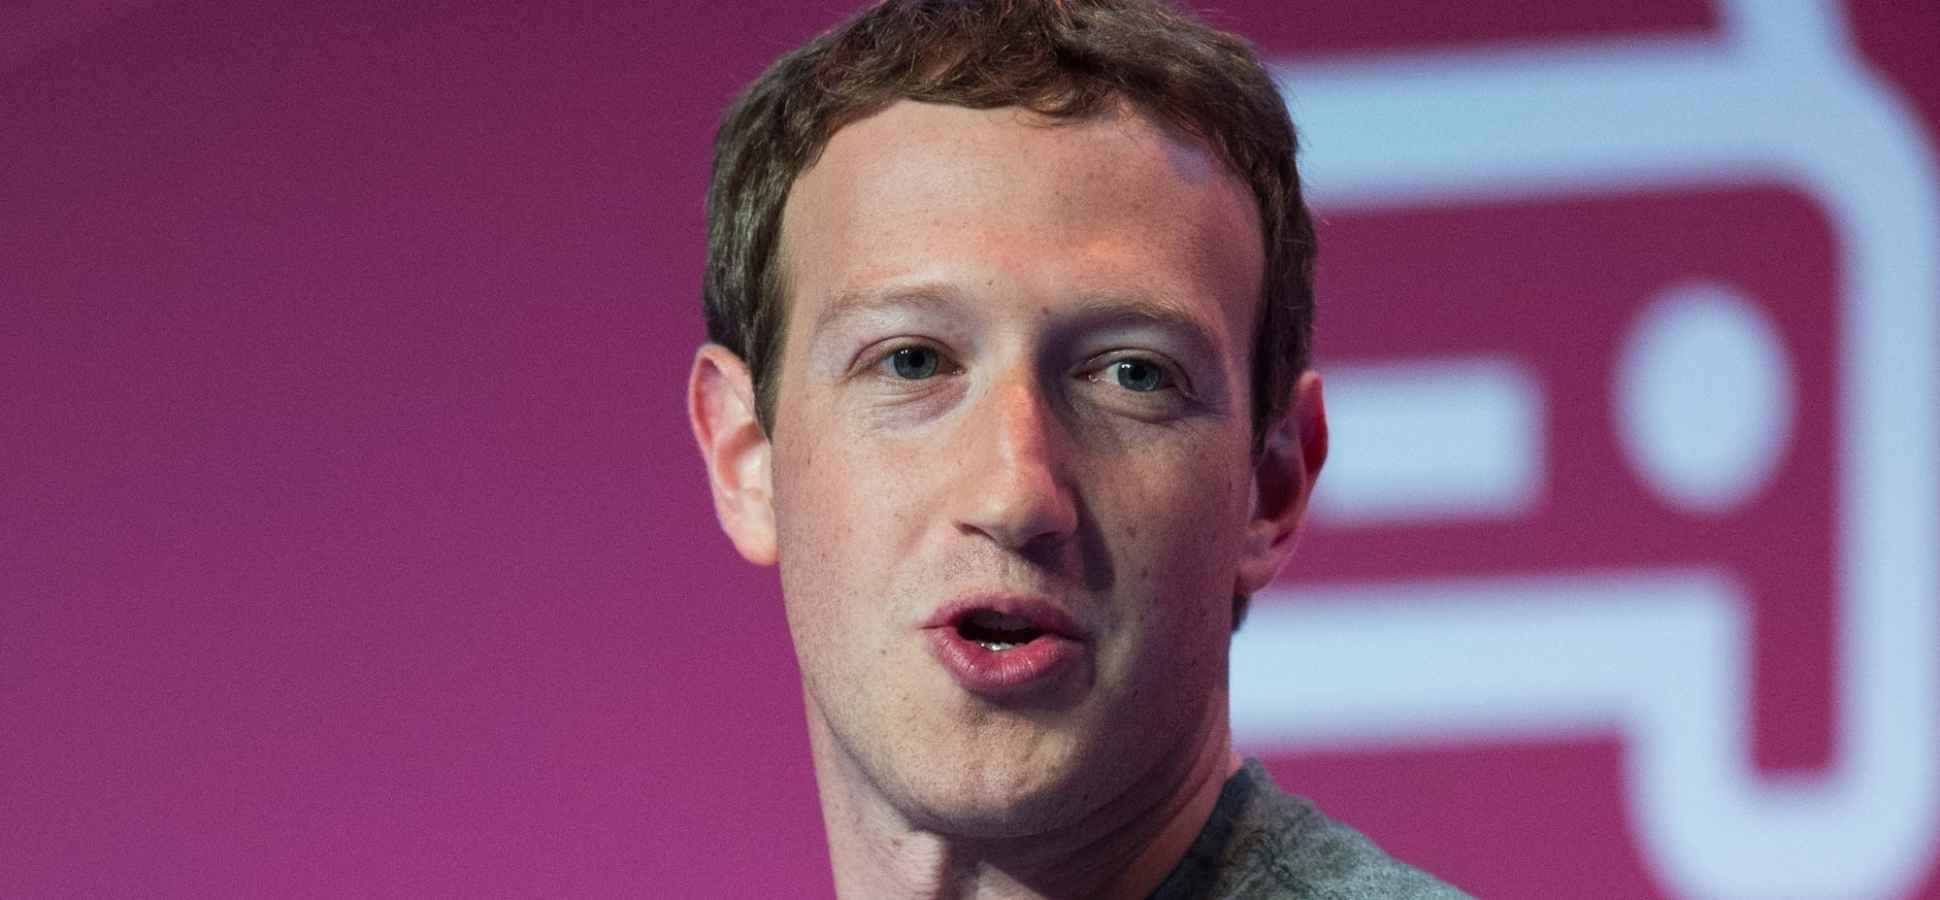 How Mark Zuckerberg Learned About Emotional Intelligence to Become a More Likable Person